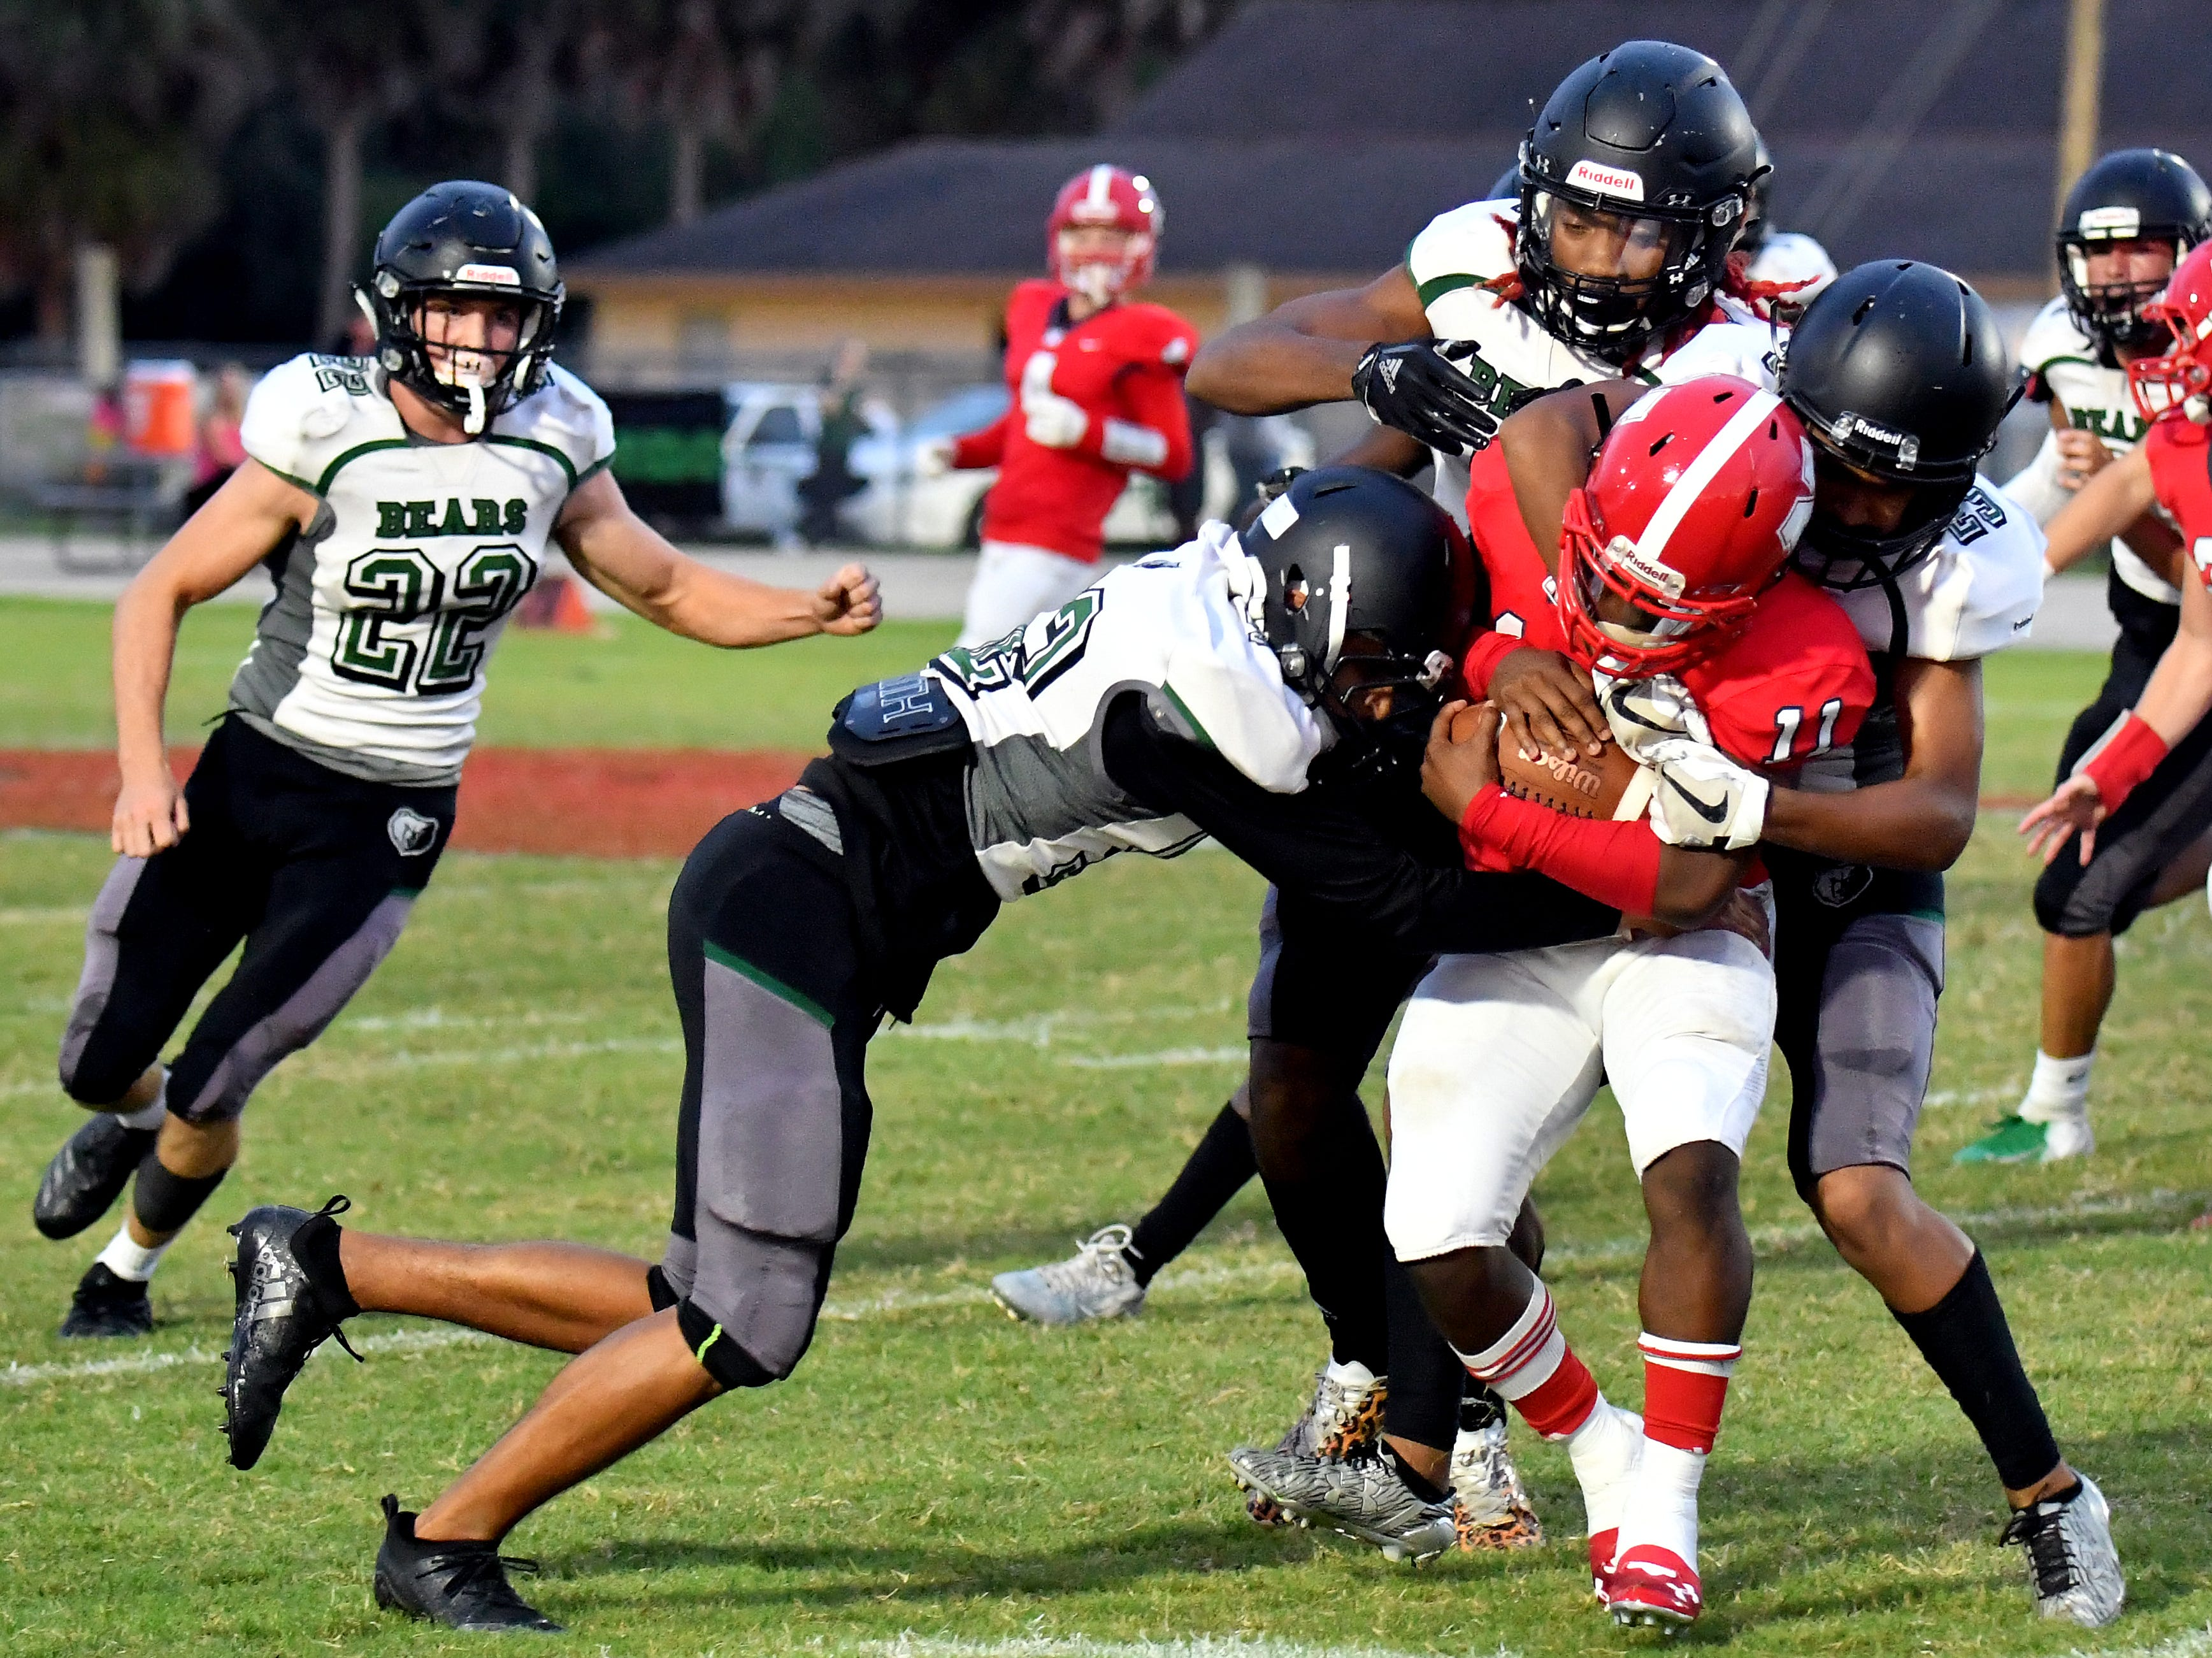 North Fort Myers High School running back Shomari Manson (11) runs the ball during their game with Palmetto Ridge High School, Friday, Sept. 7, 2018. (Chris Tilley/Special to the Naples Daily News)